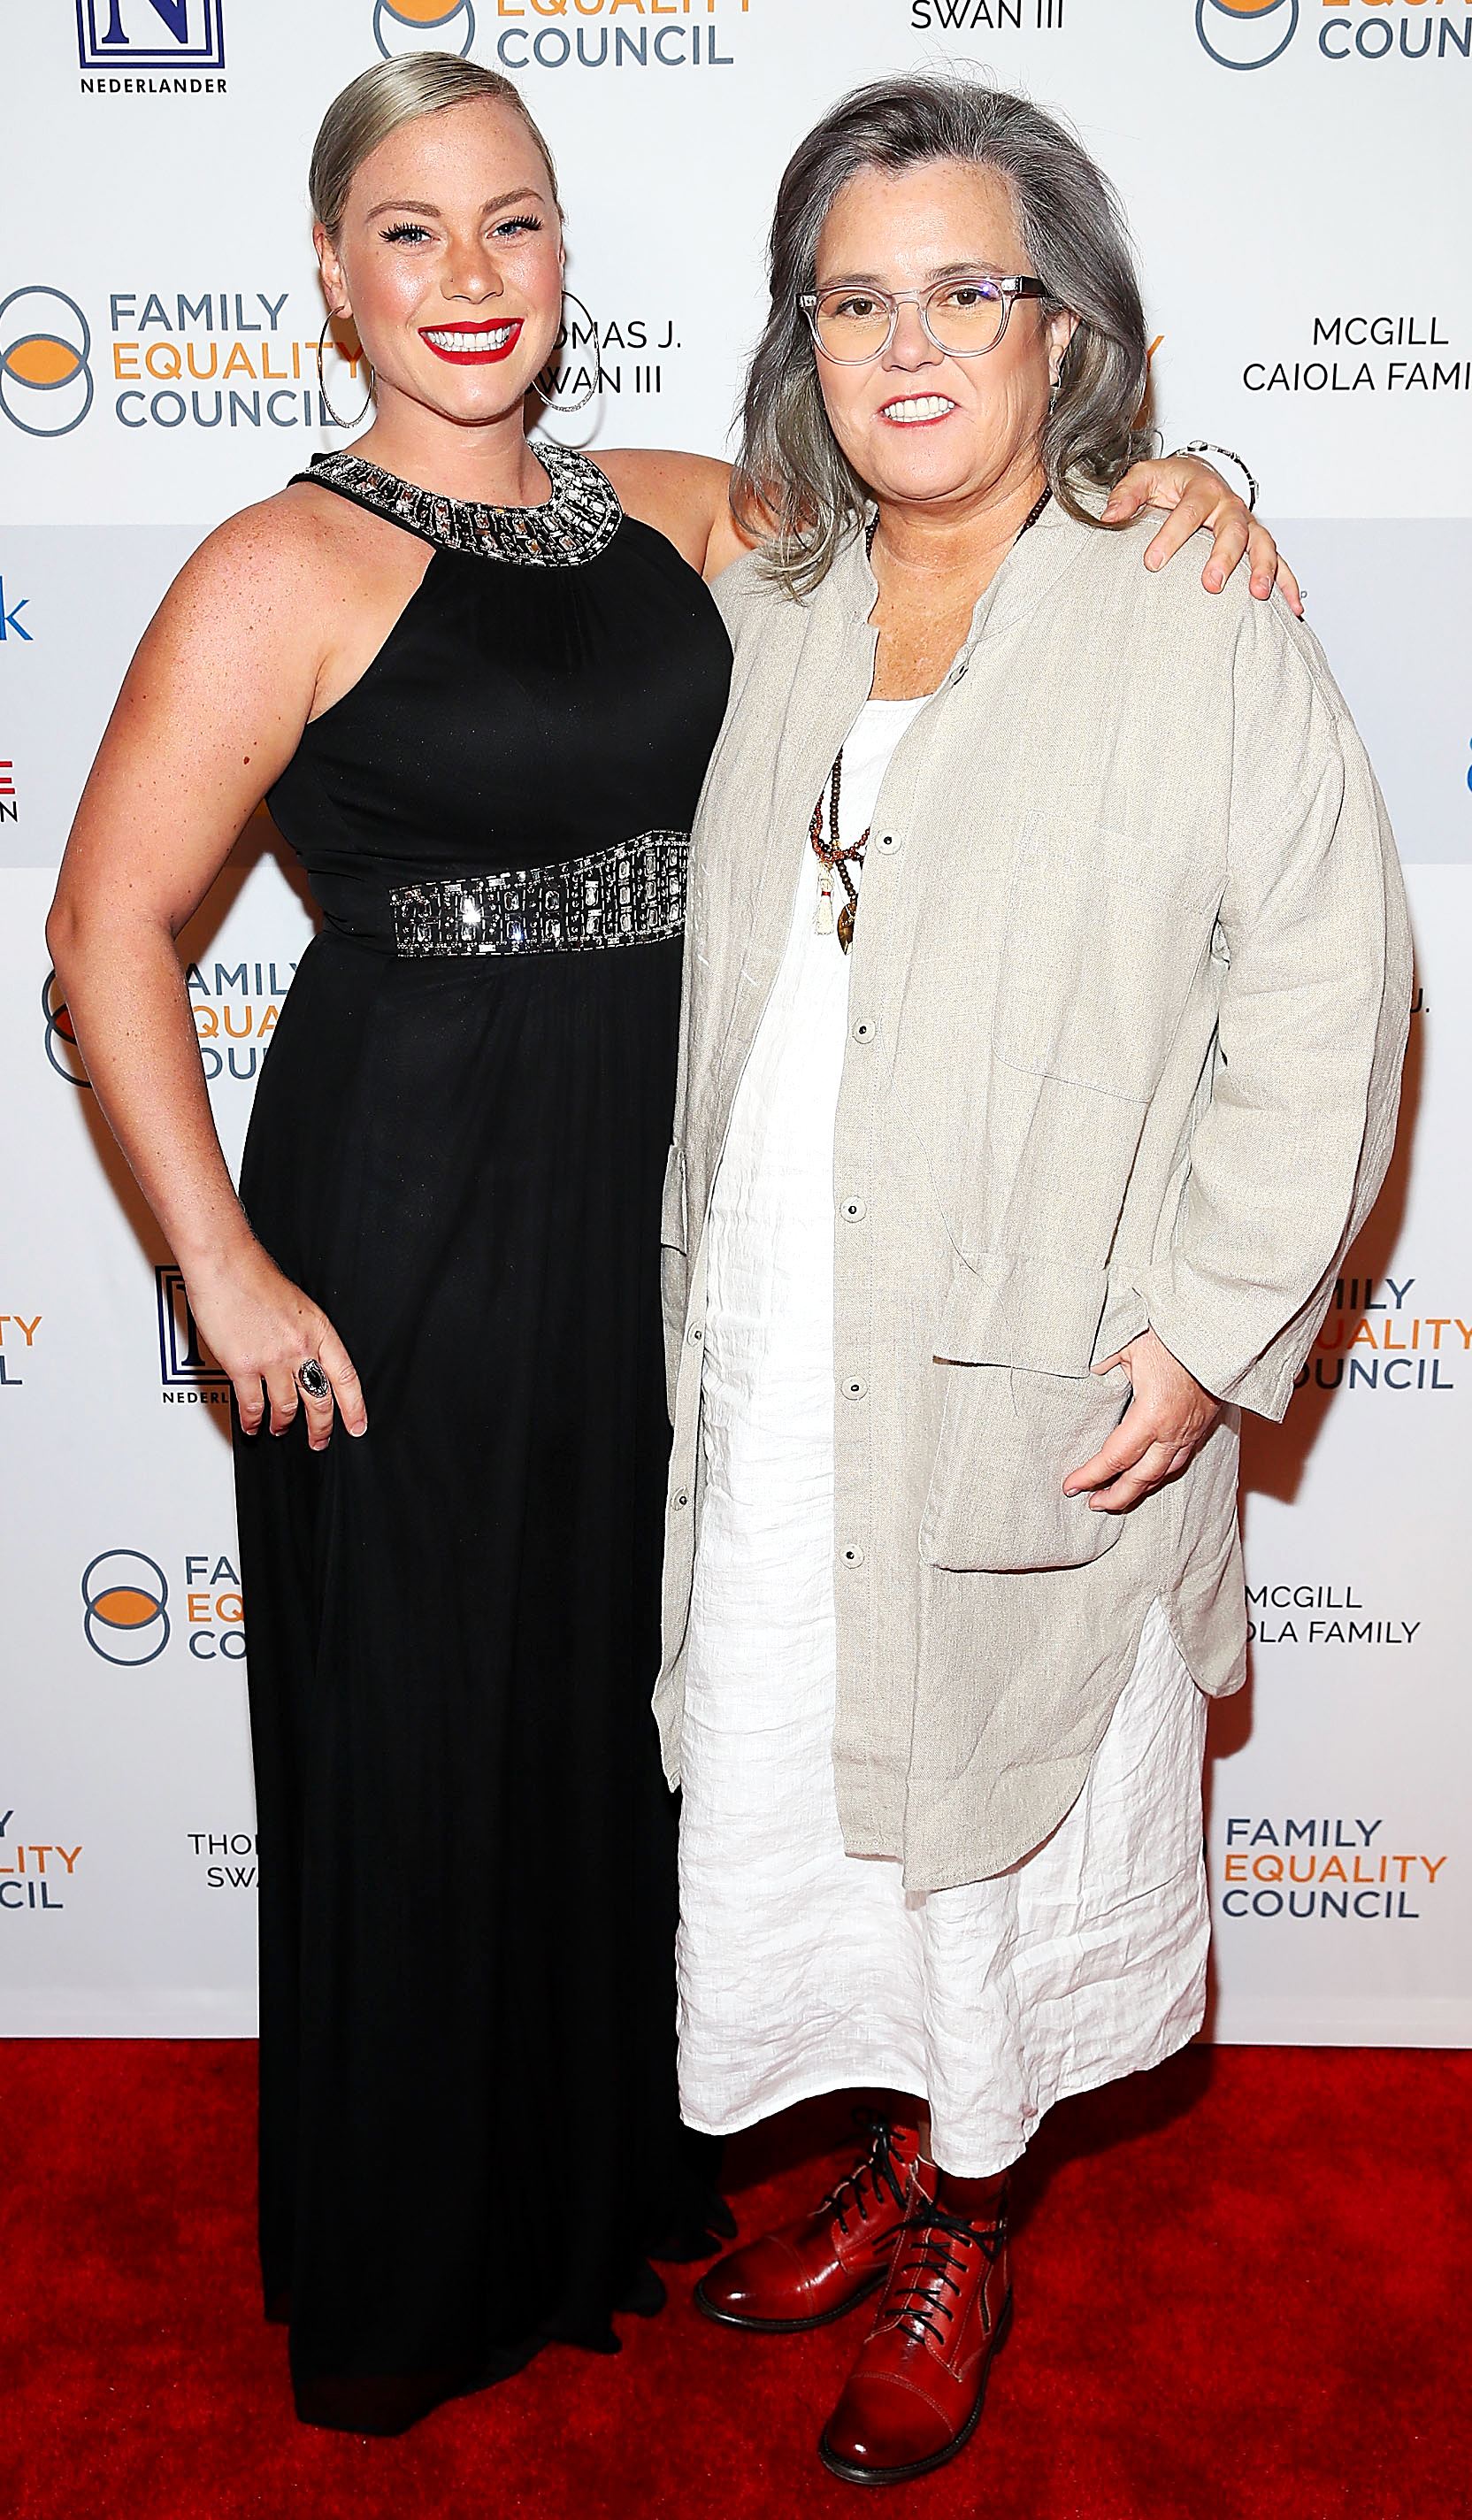 Rosie O'Donnell First Night Sleeping Over Police Officer Fiancee House